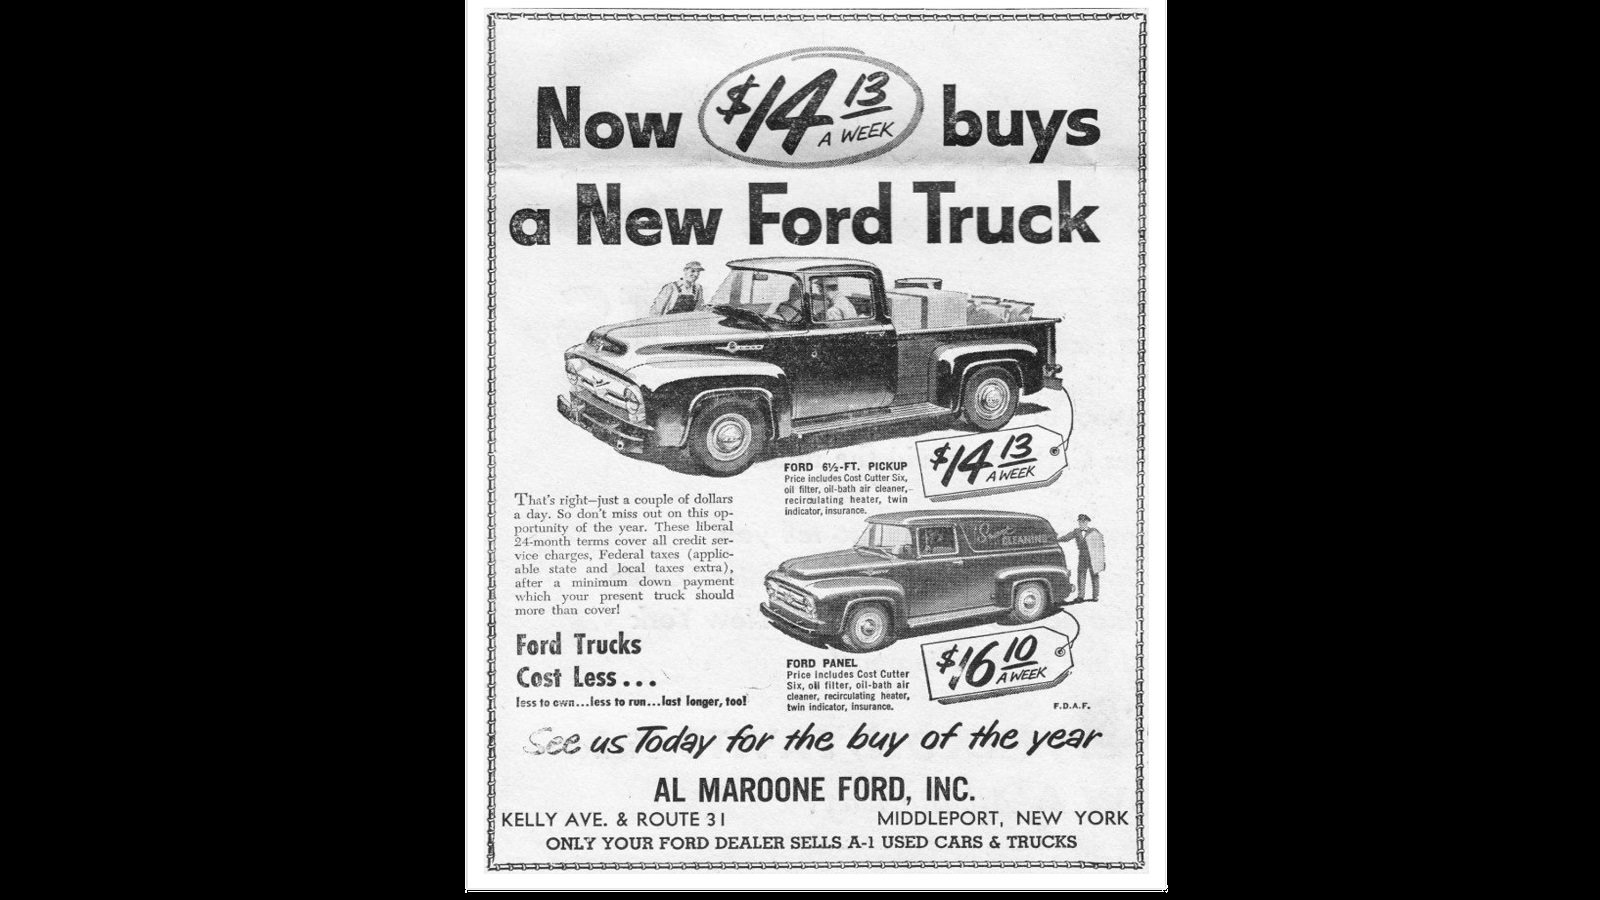 Buy a Ford Truck For a Couple Dollars a Day